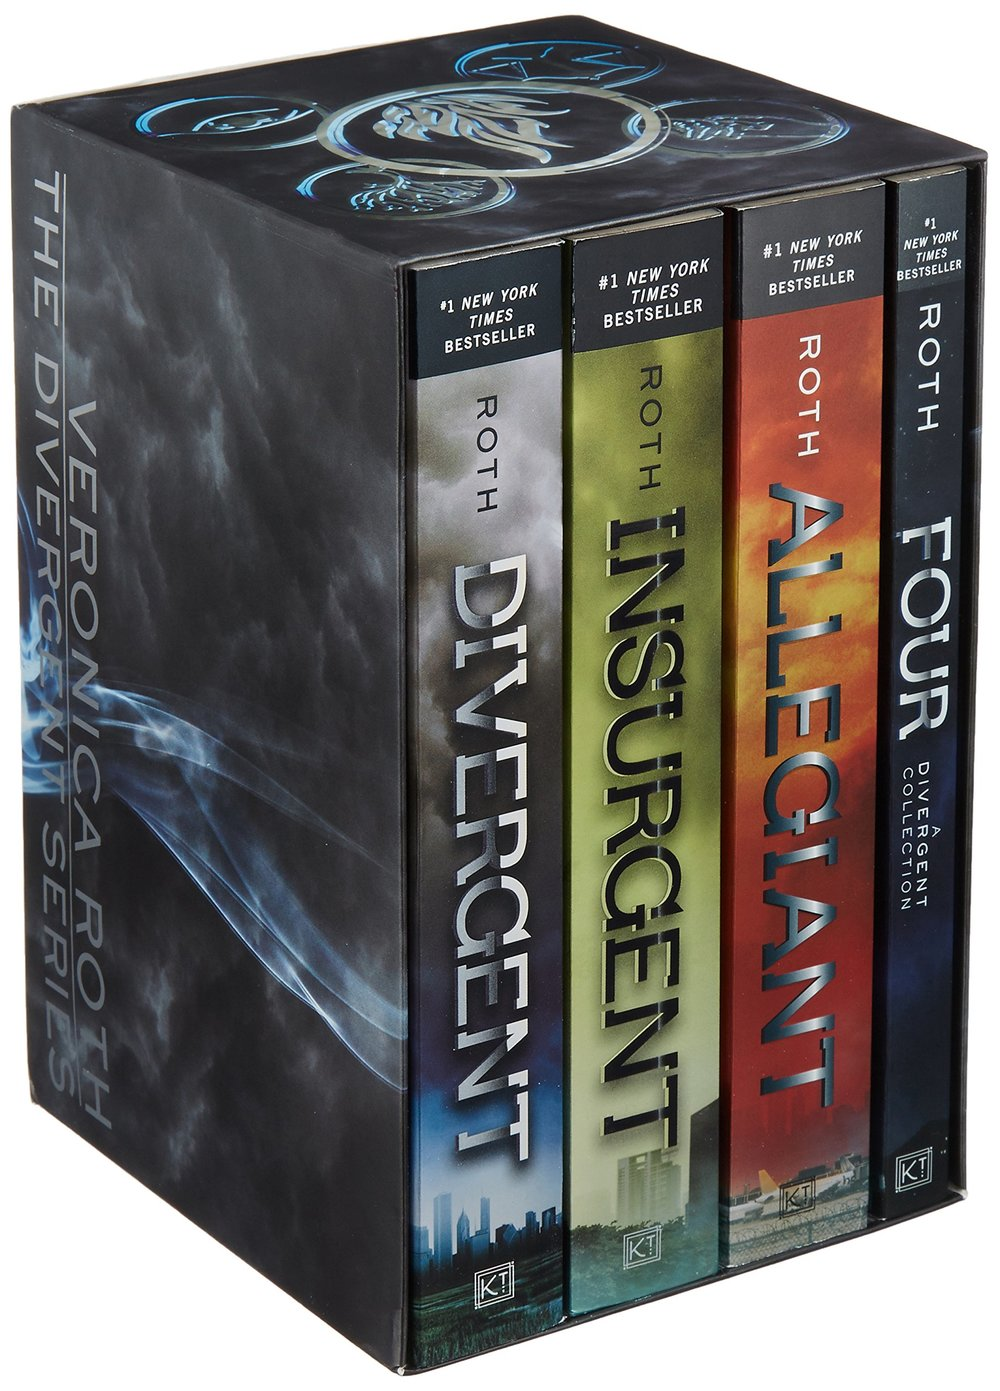 Divergent Series by Veronica Roth boxed set